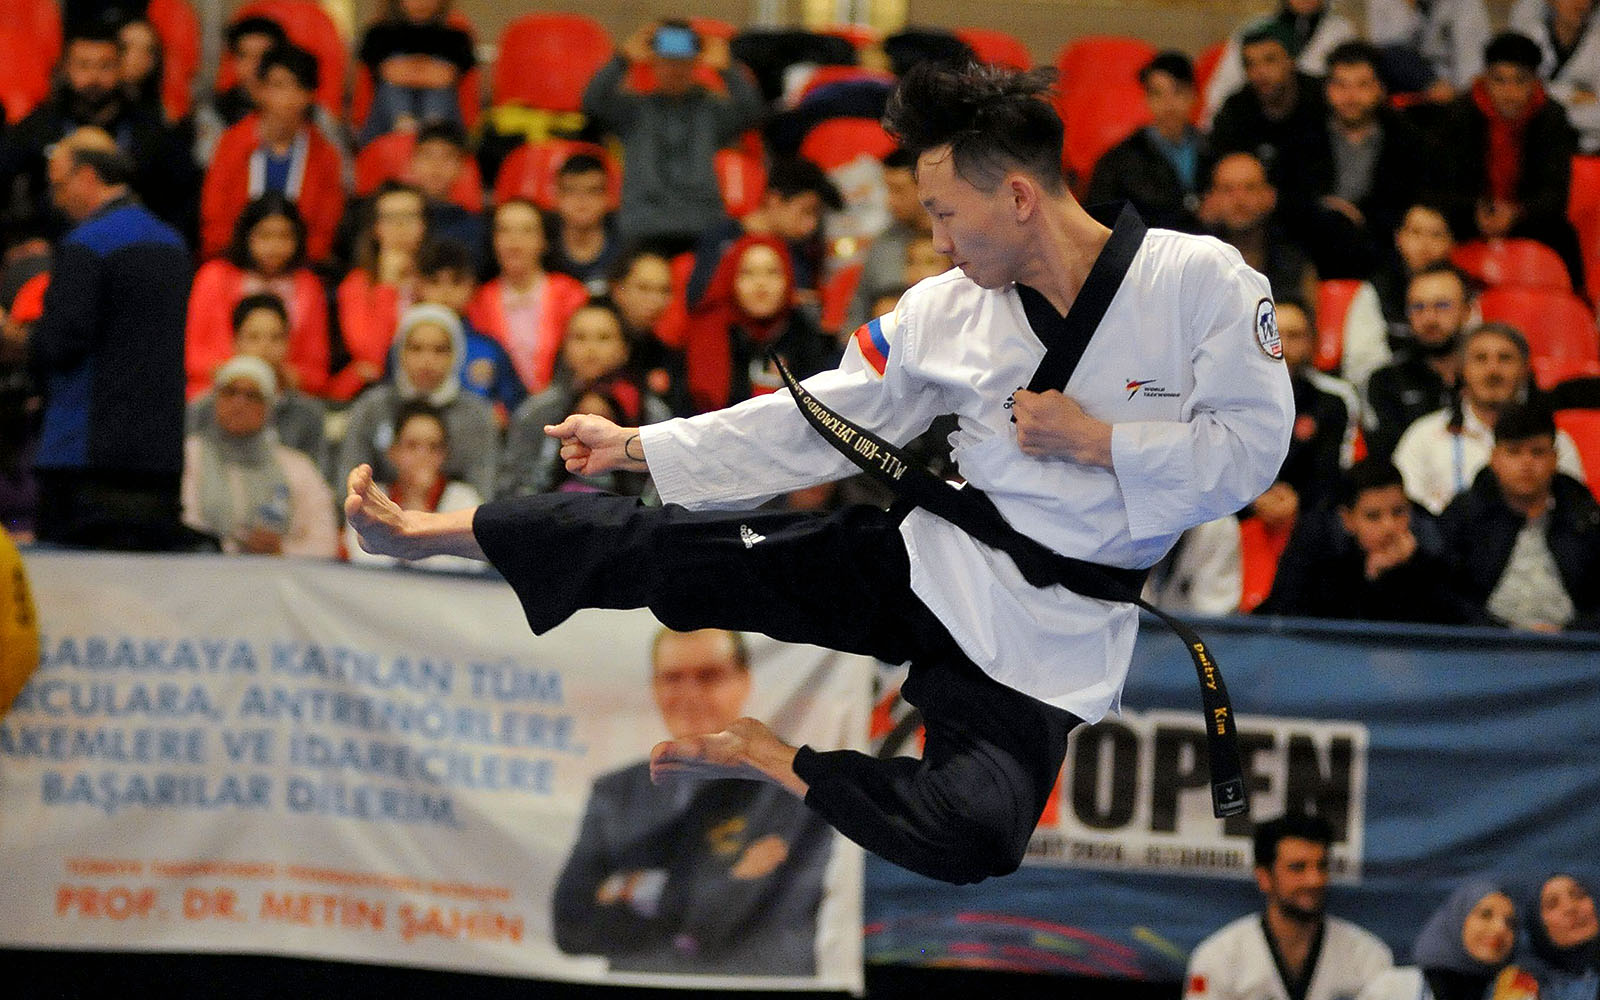 Poomsae2_MasTKD_7th-Turkish-Open-Taekwondo-Tournament